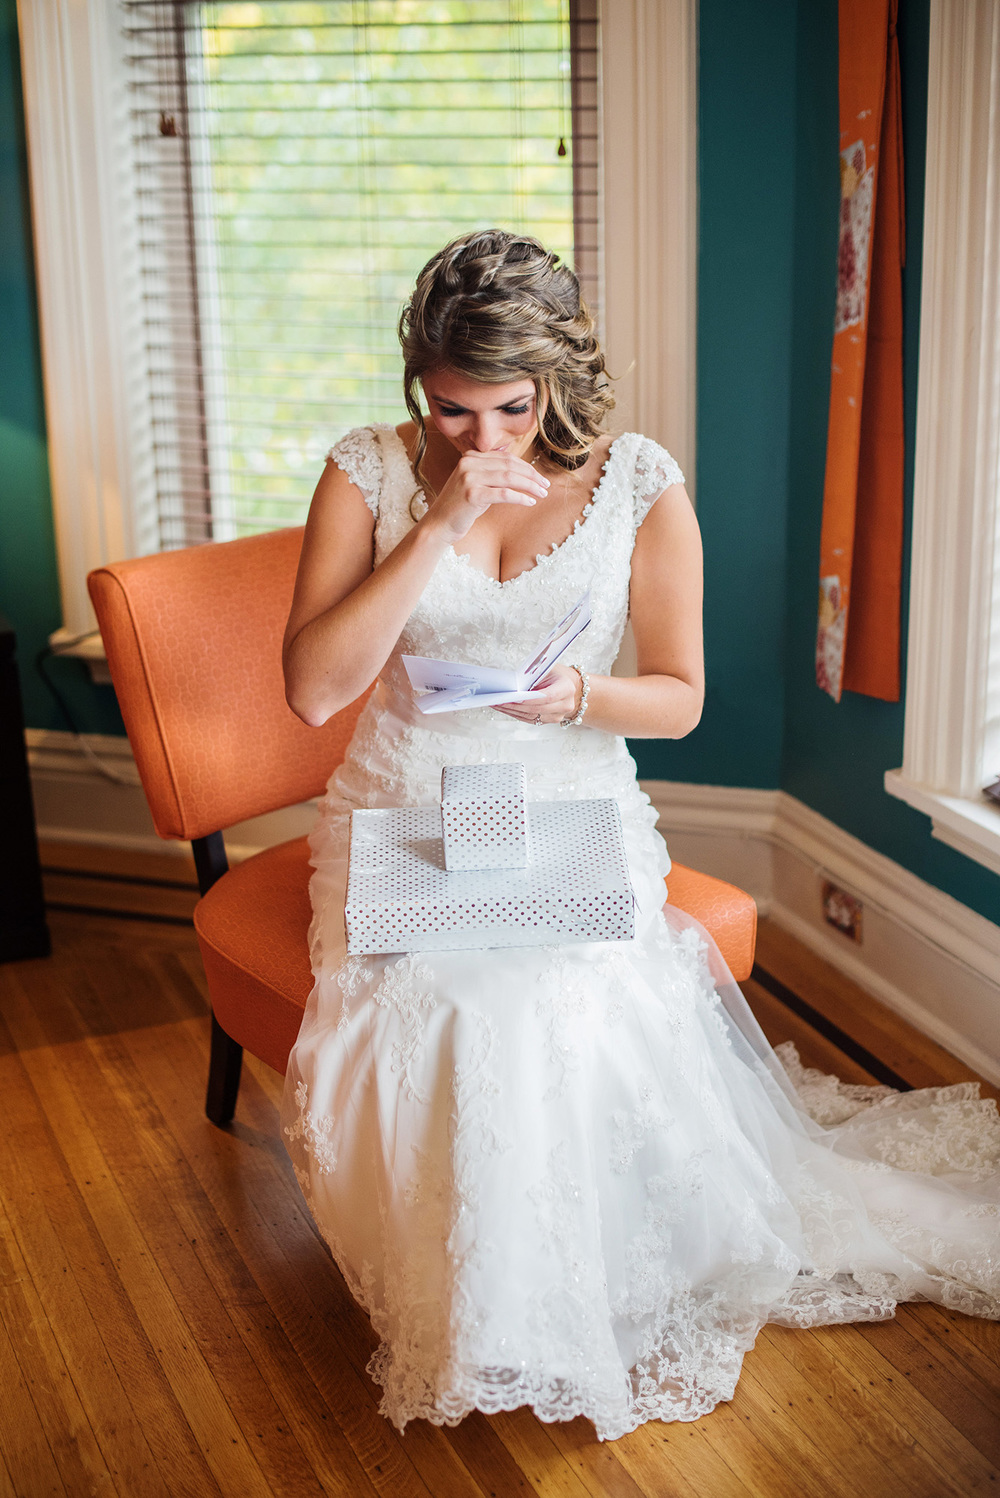 Chris Emma got married-Emma Getting Ready-0104.jpg